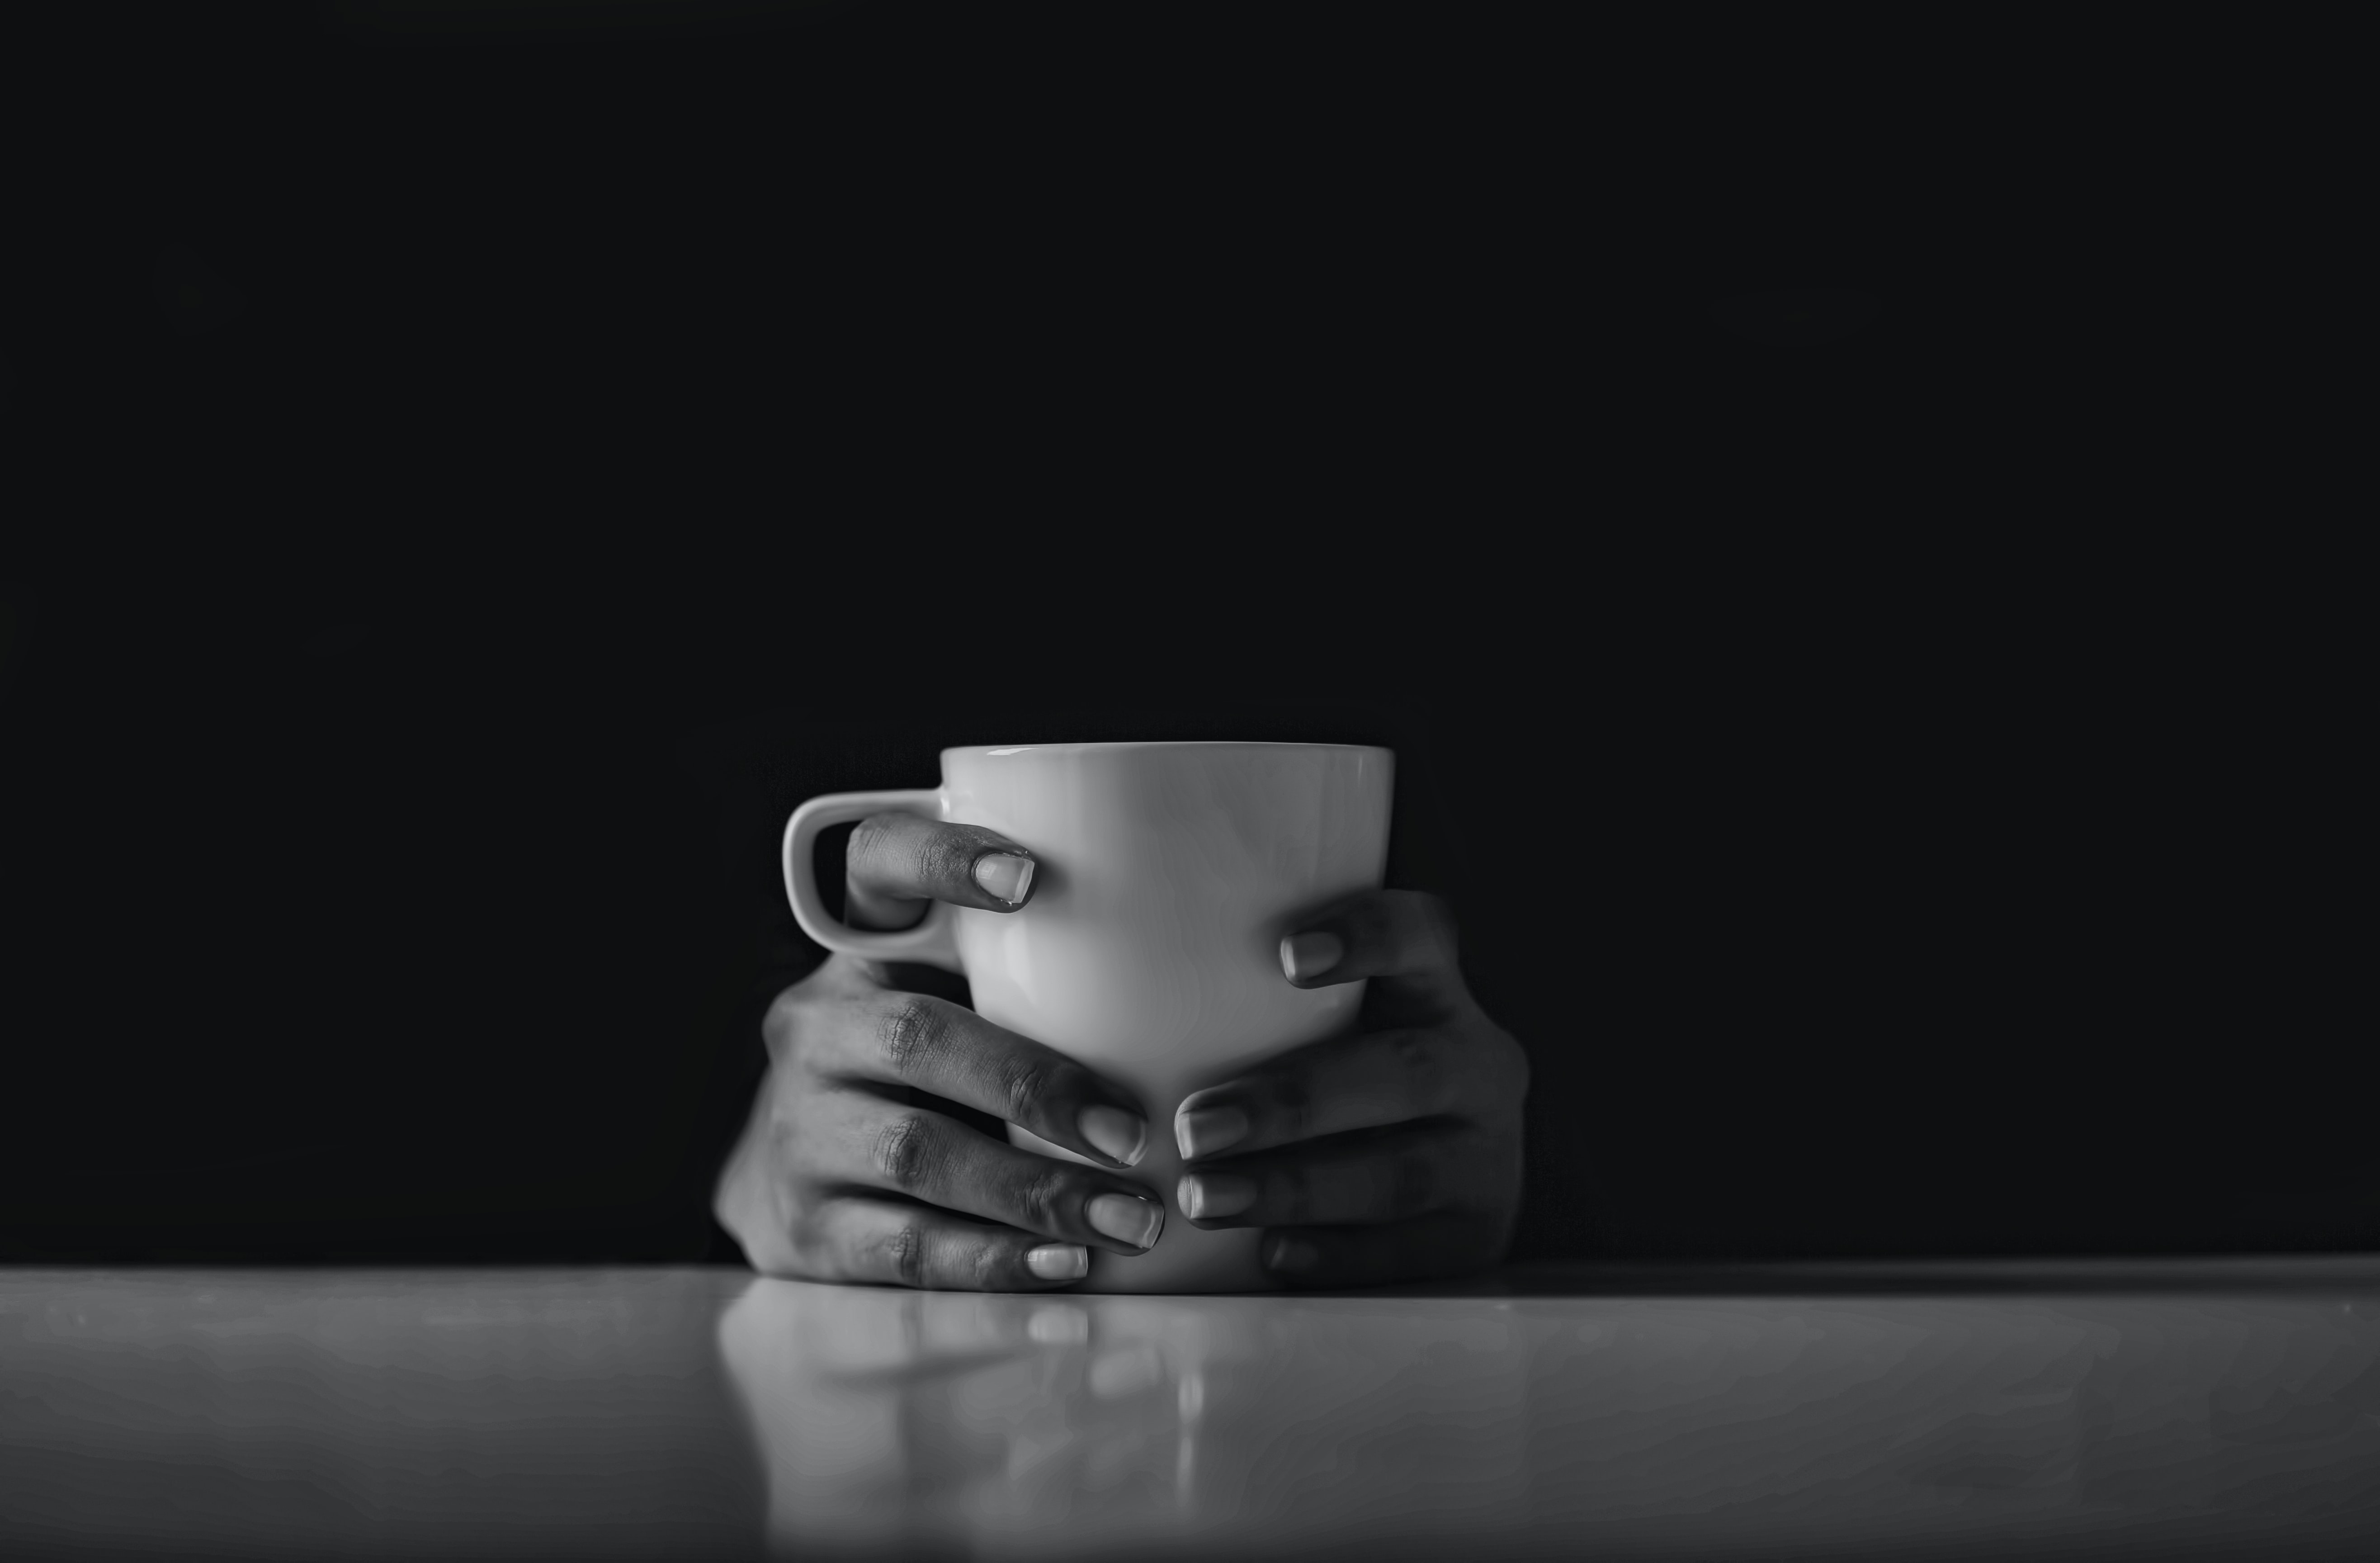 grayscale photo of person's hands holding a ceramic mug